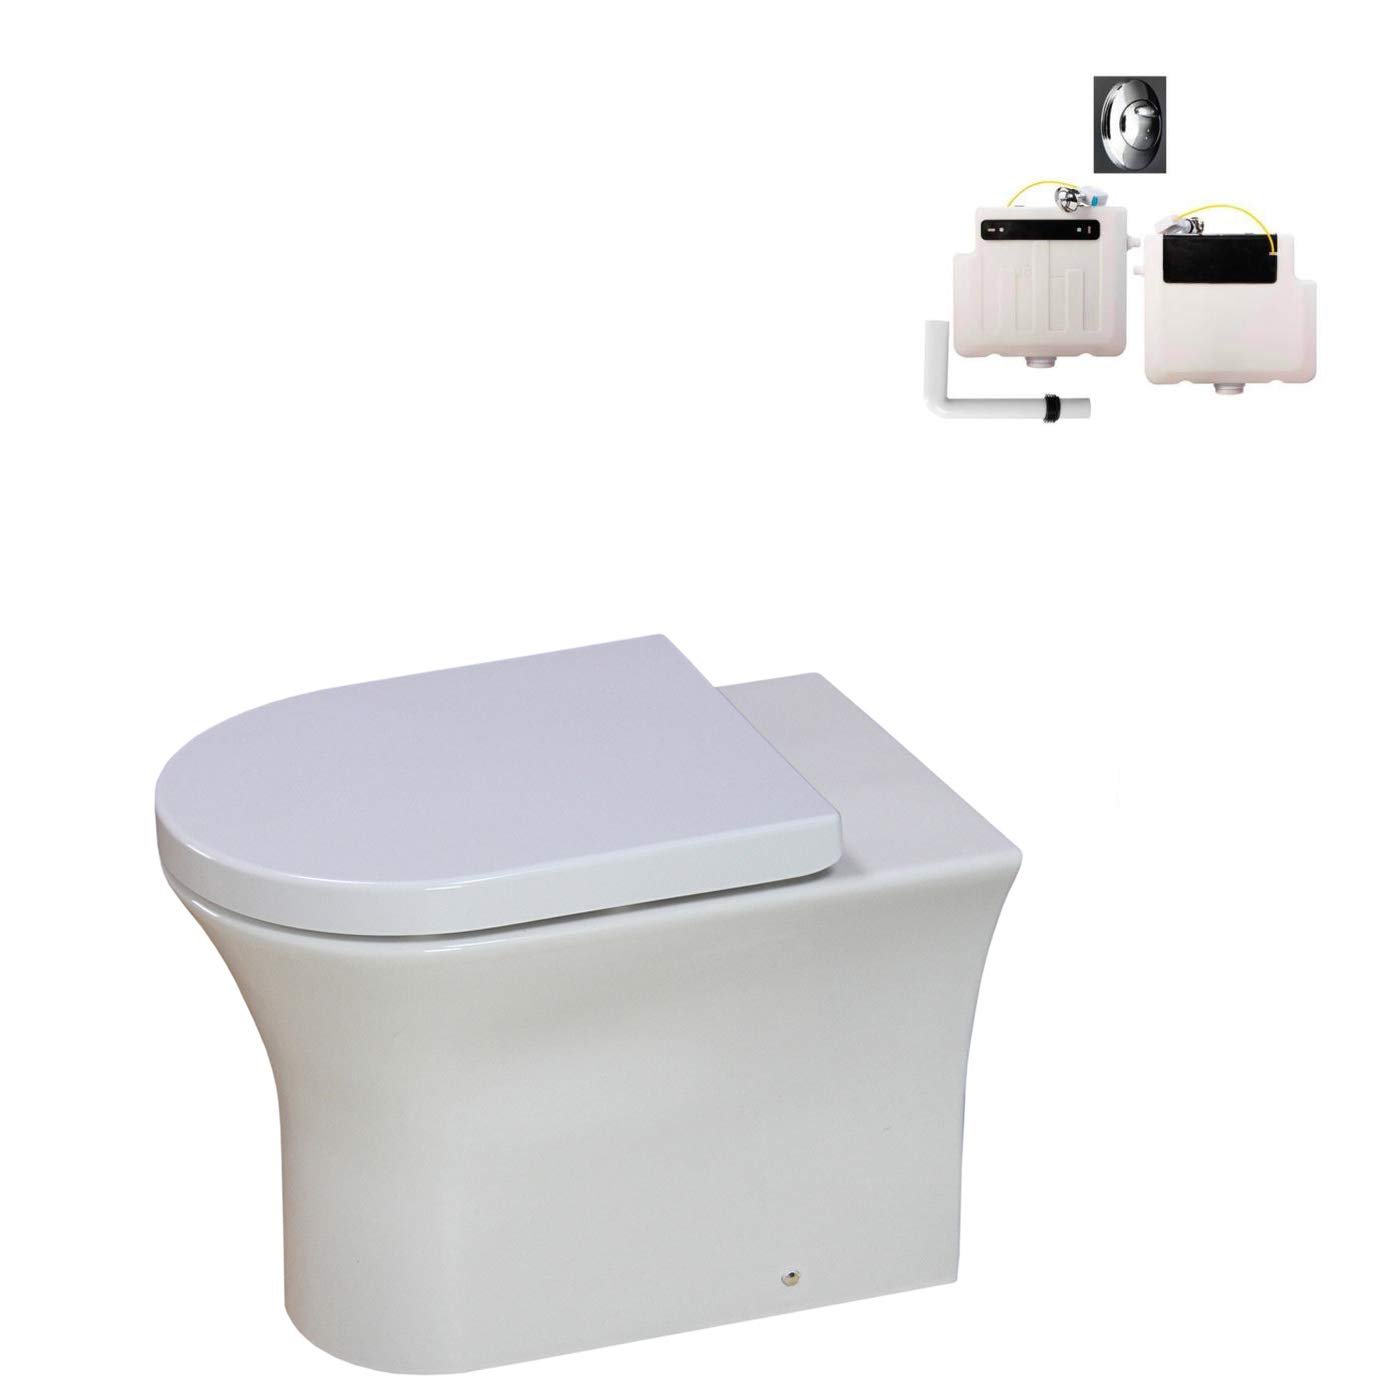 KLARA Toilet Back to Wall Concealed Cistern Ceramic Soft Close Seat